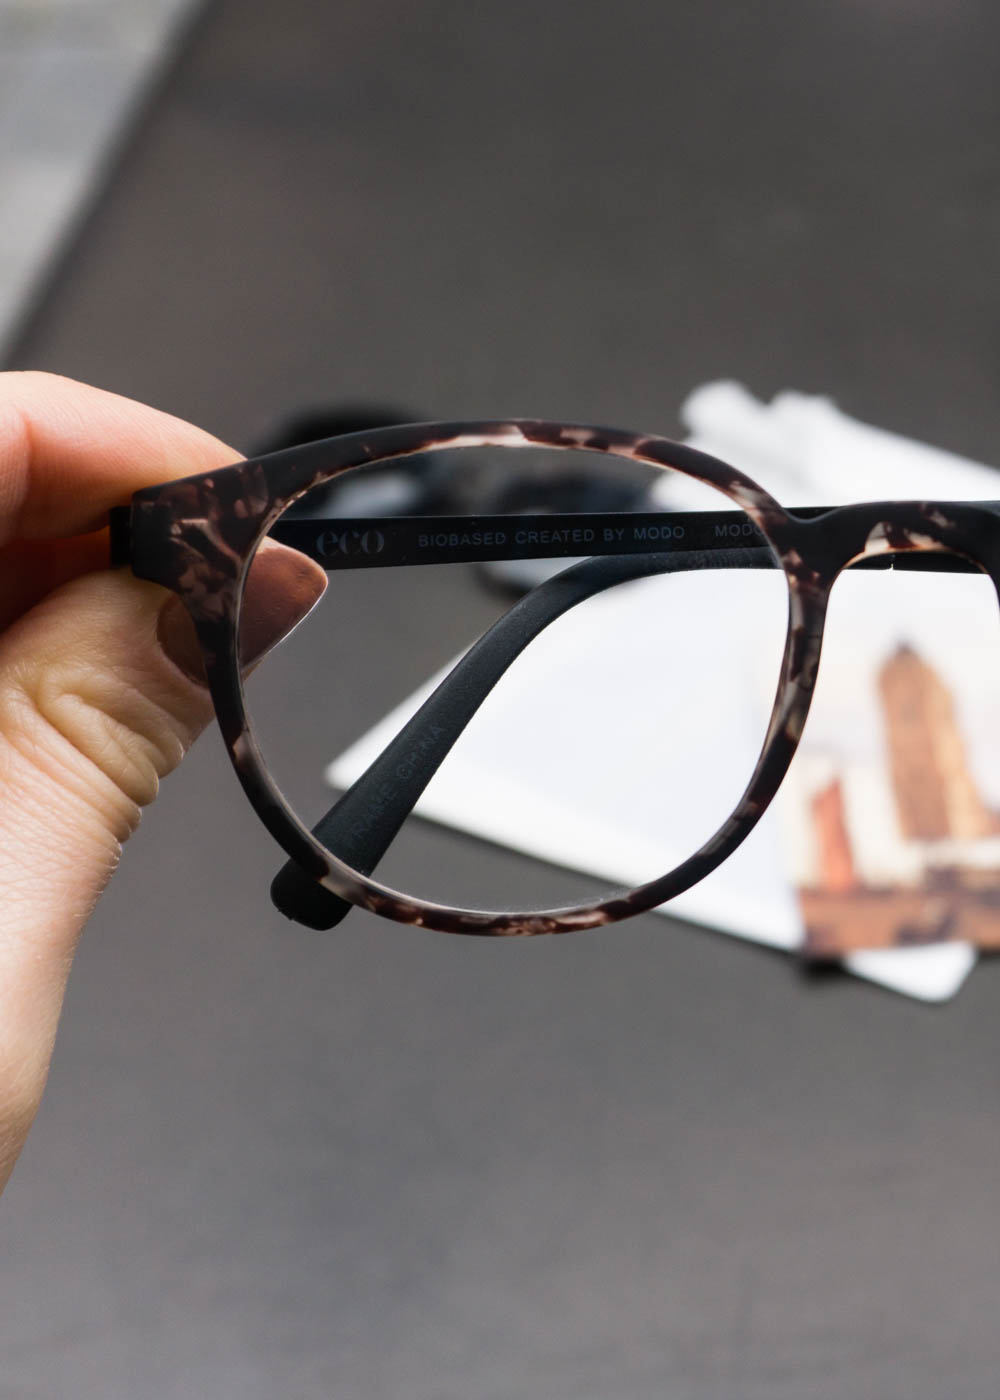 eco eyewear modo glasses frames fashion style rgdaily blog